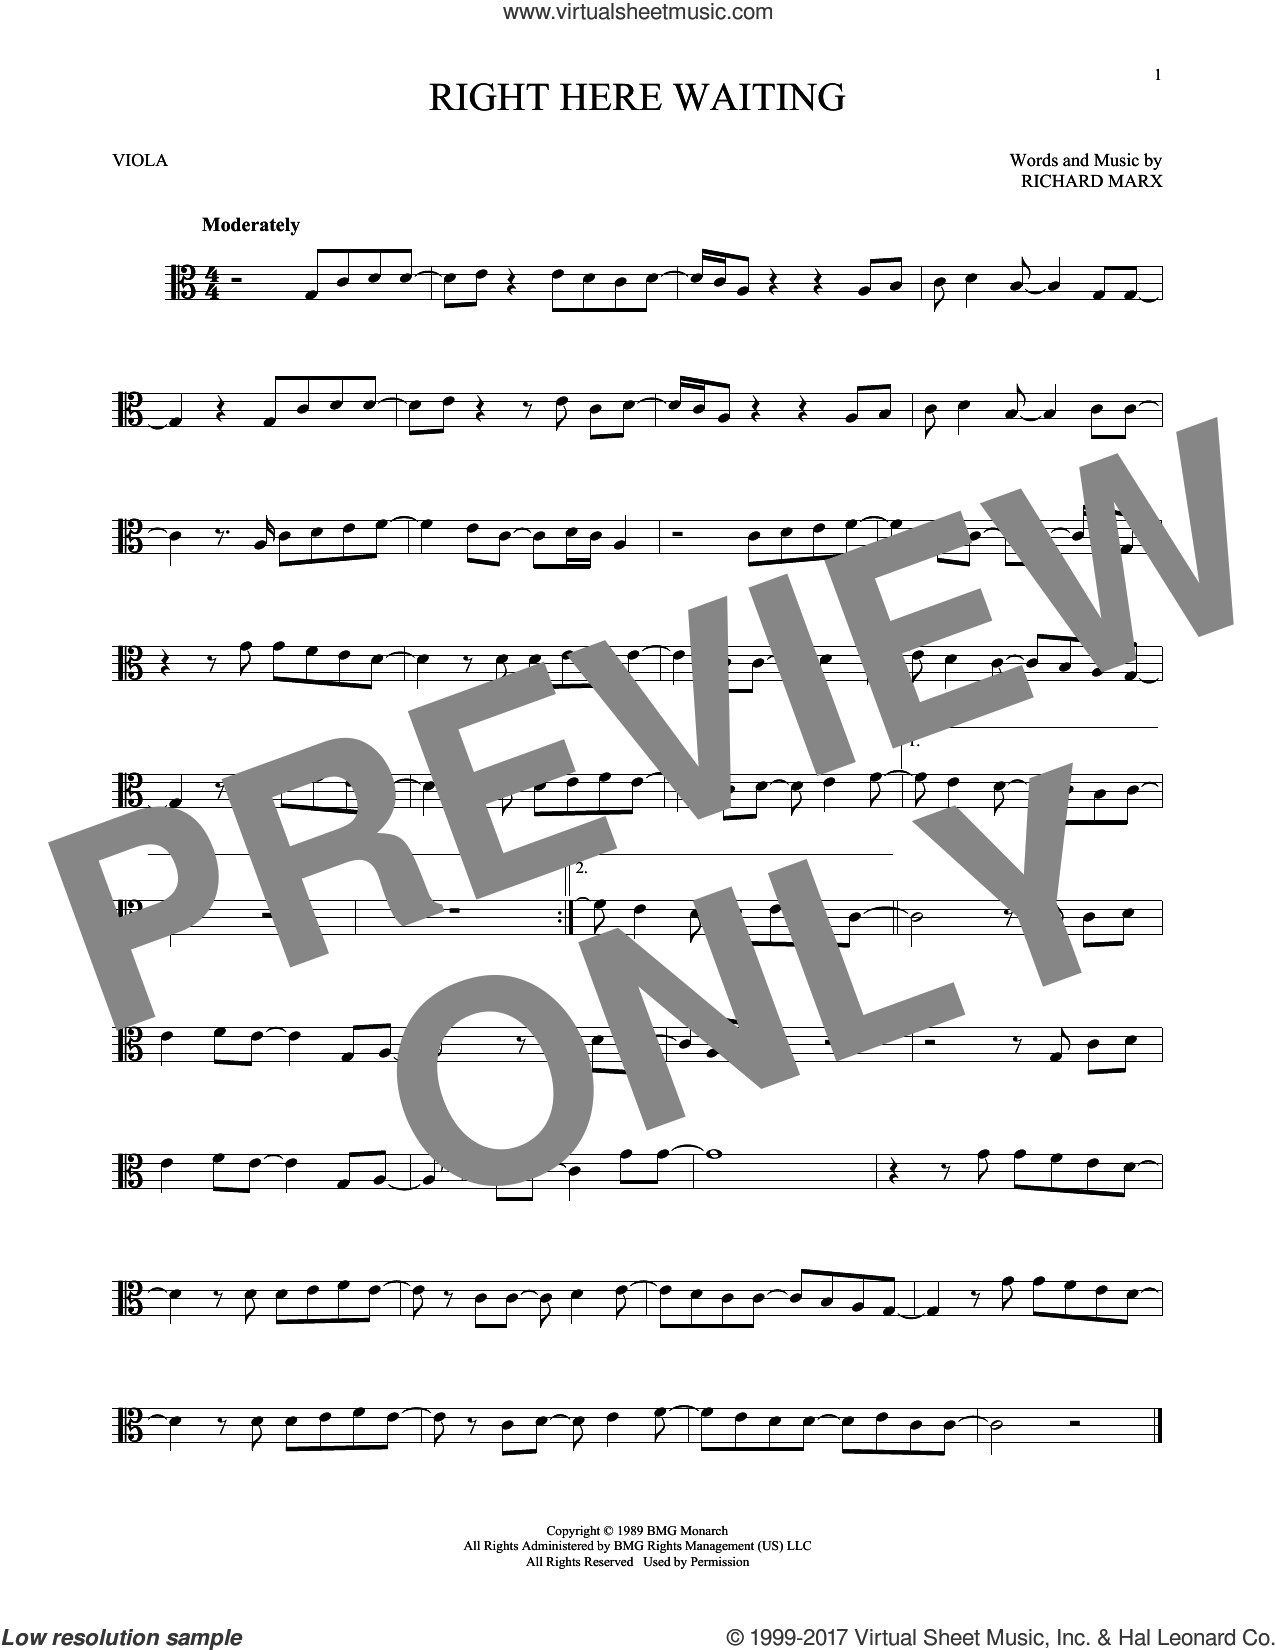 Right Here Waiting sheet music for viola solo by Richard Marx, intermediate skill level